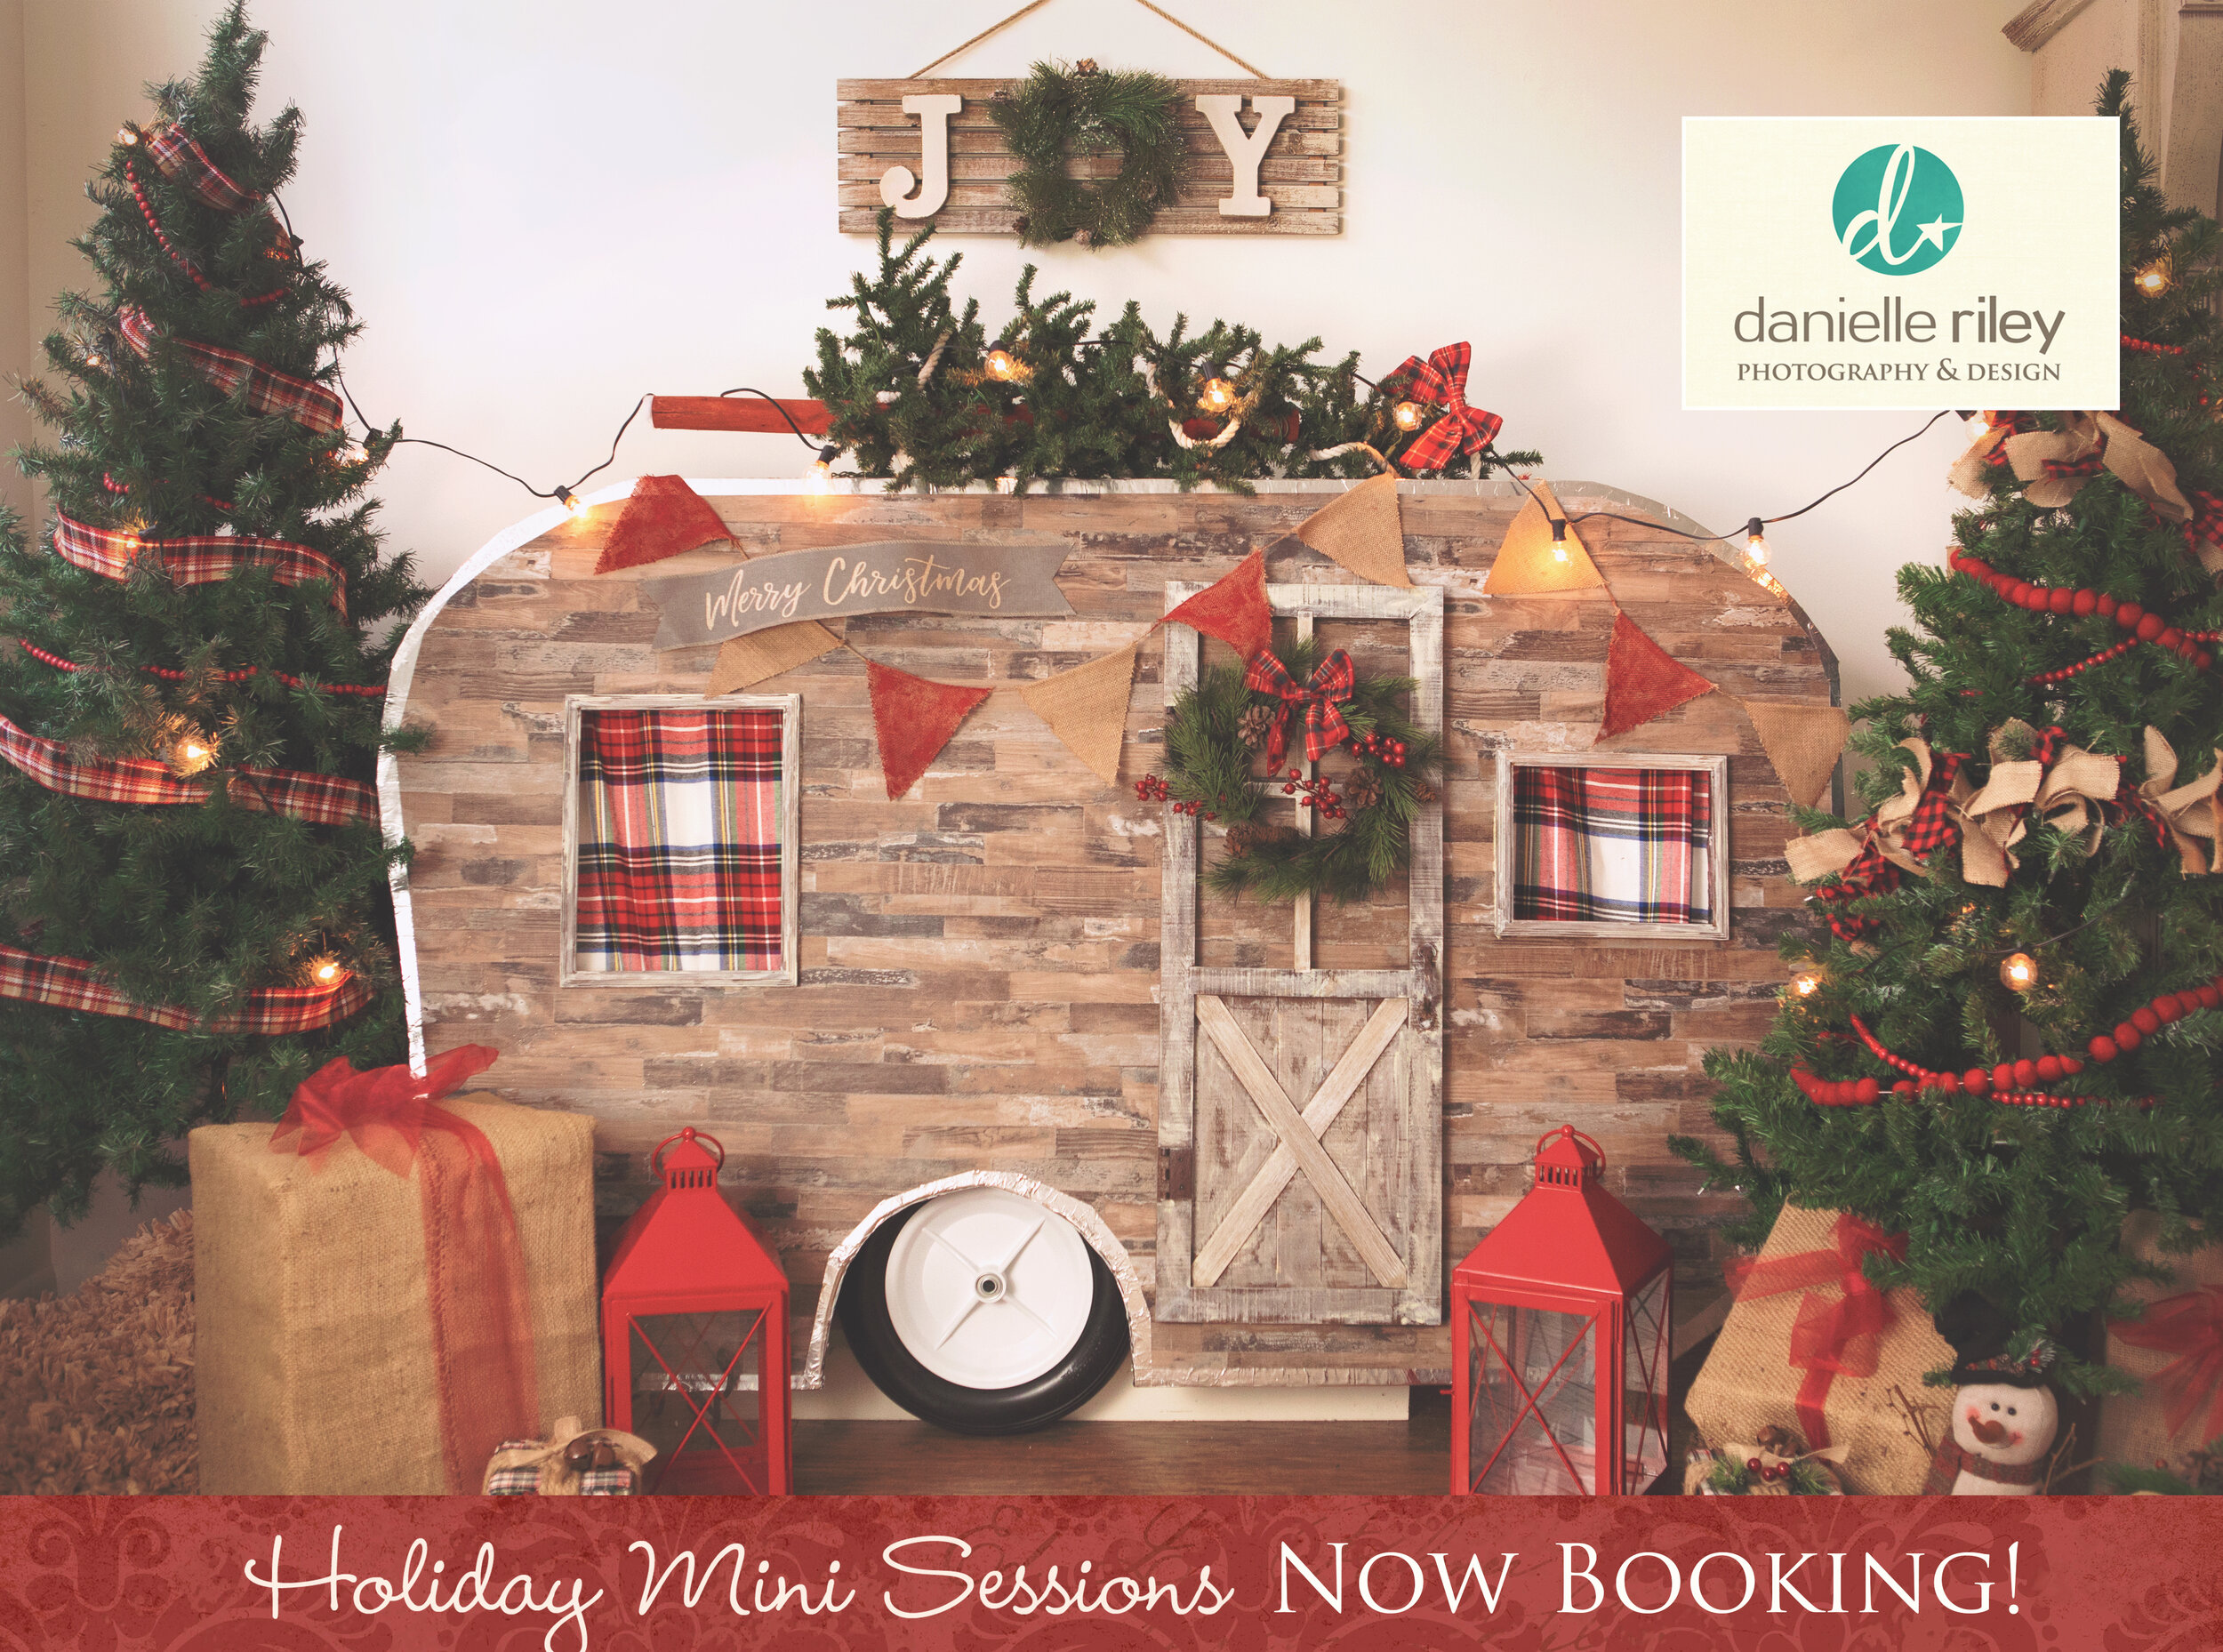 holiday portrait sessions designed for your little ones in this festive setting.